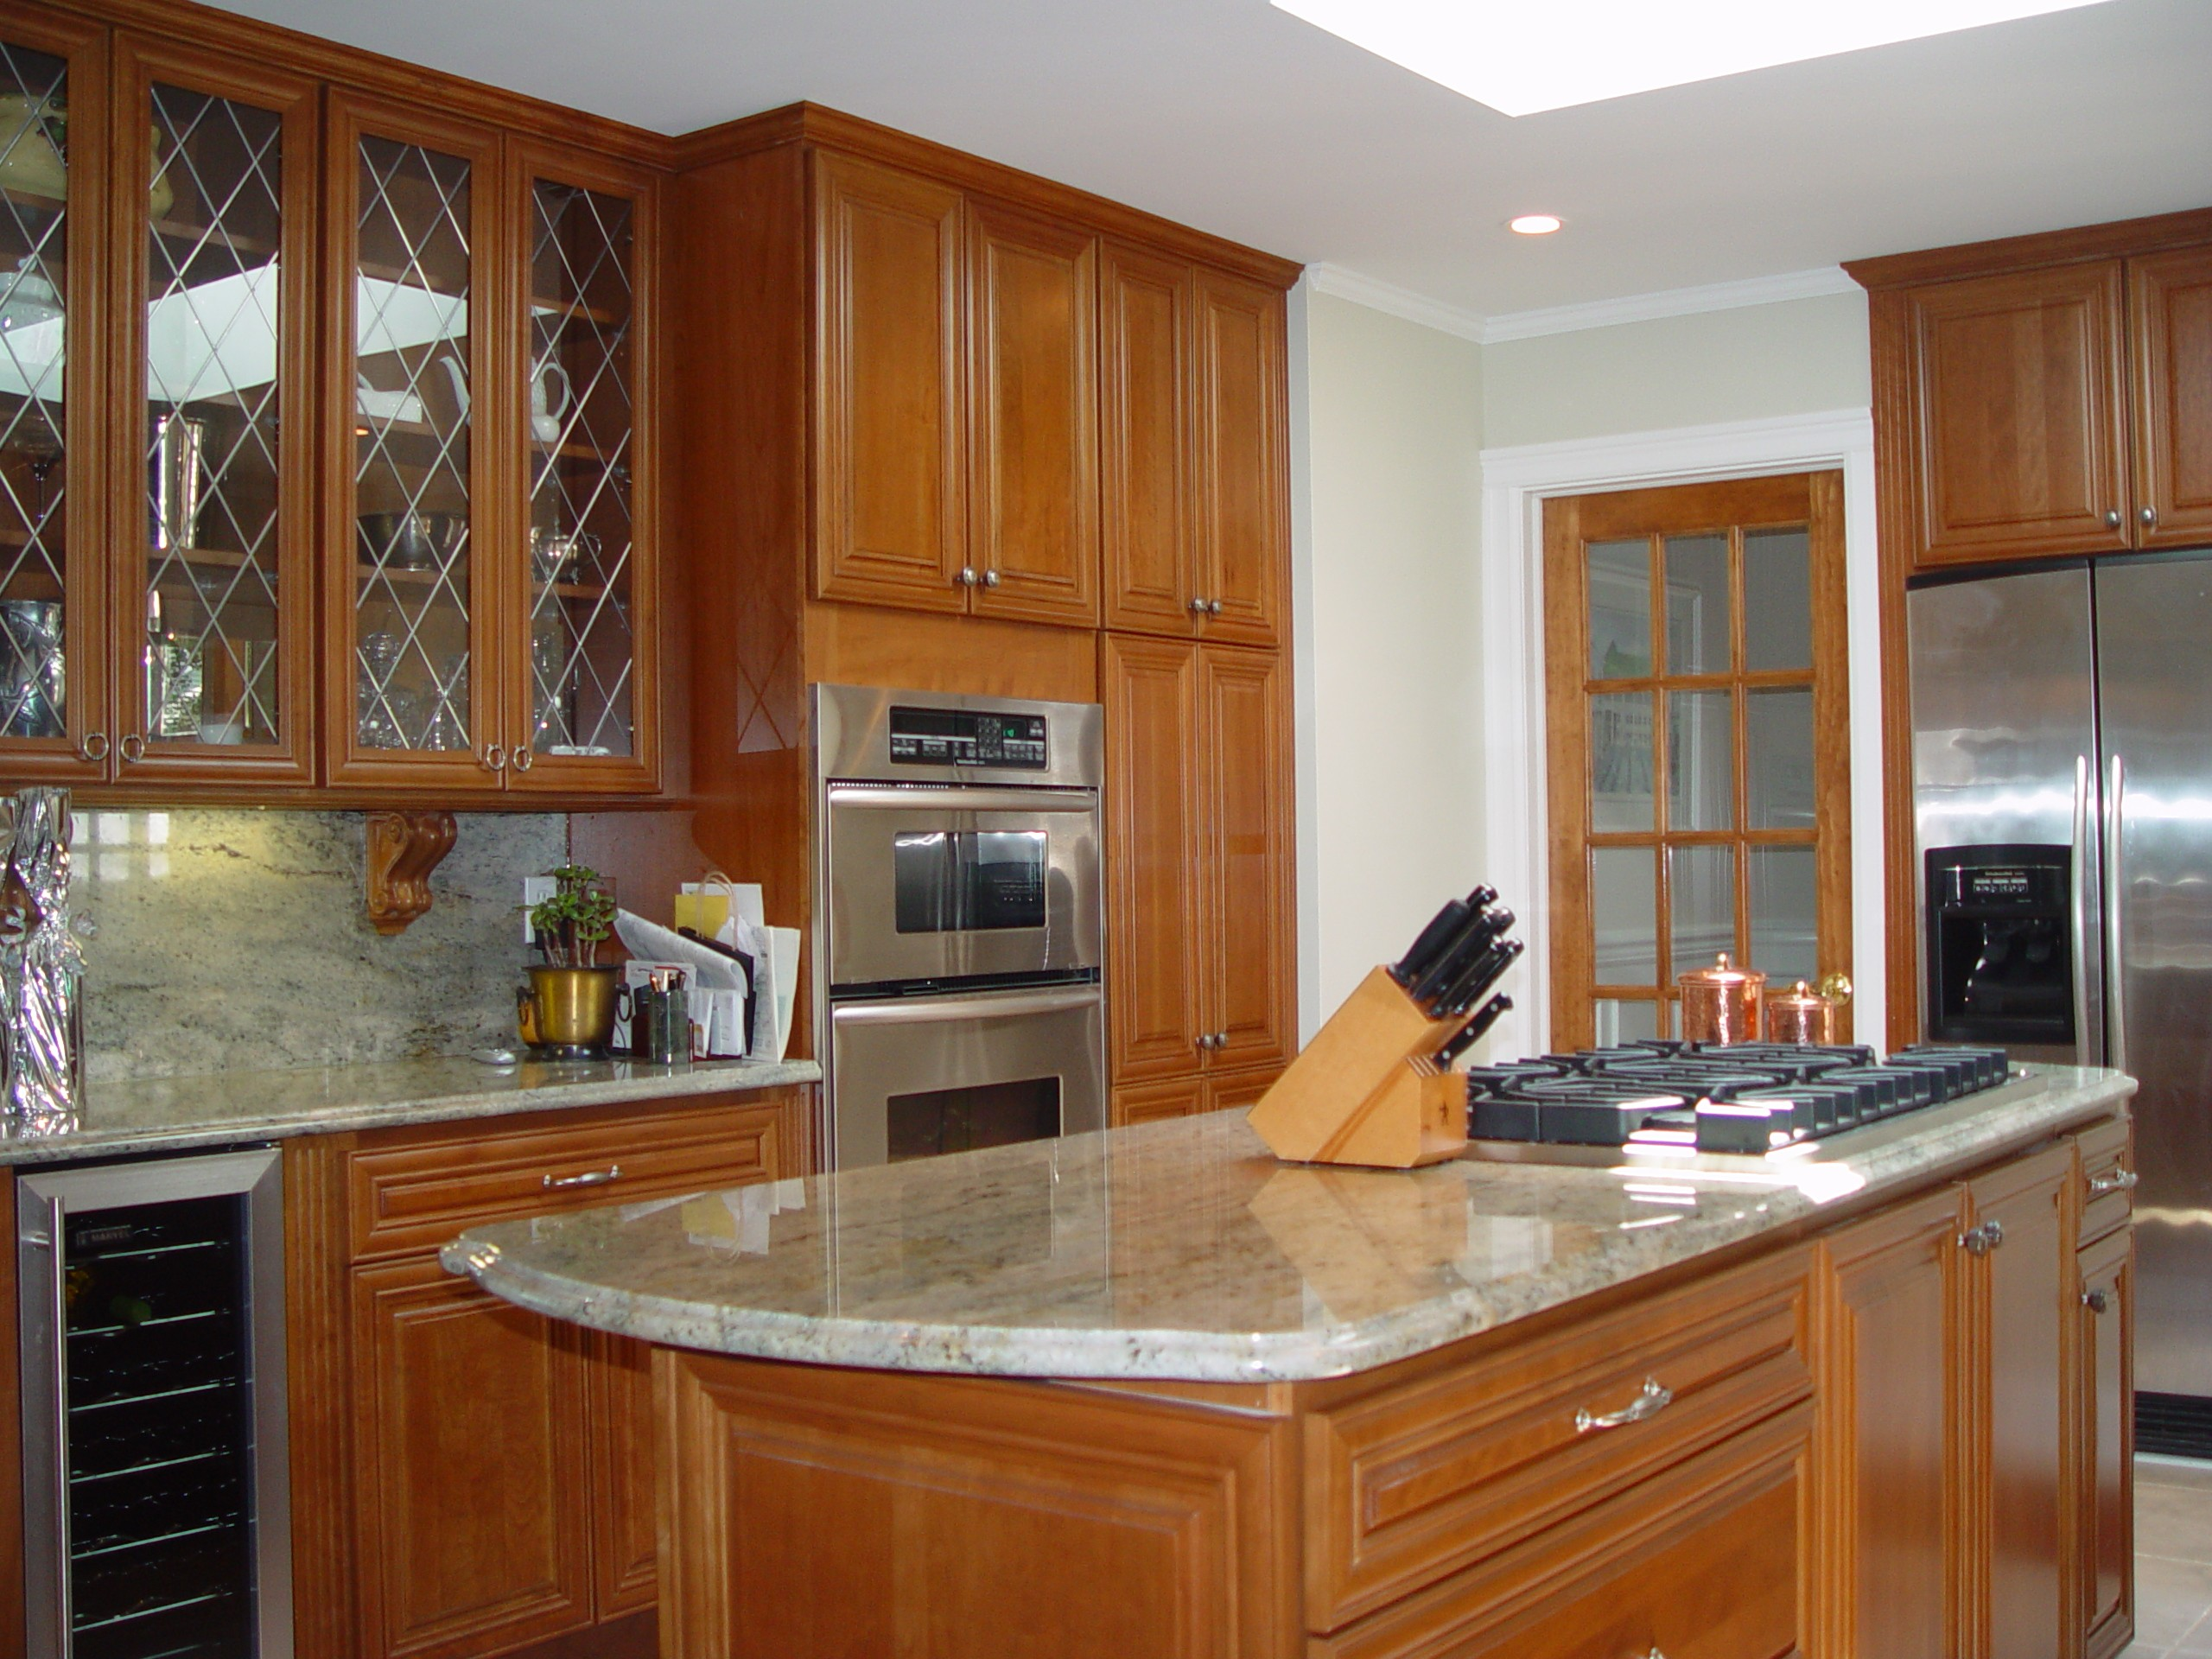 Beau Monmouth County Kitchen Remodel Design Build NJ